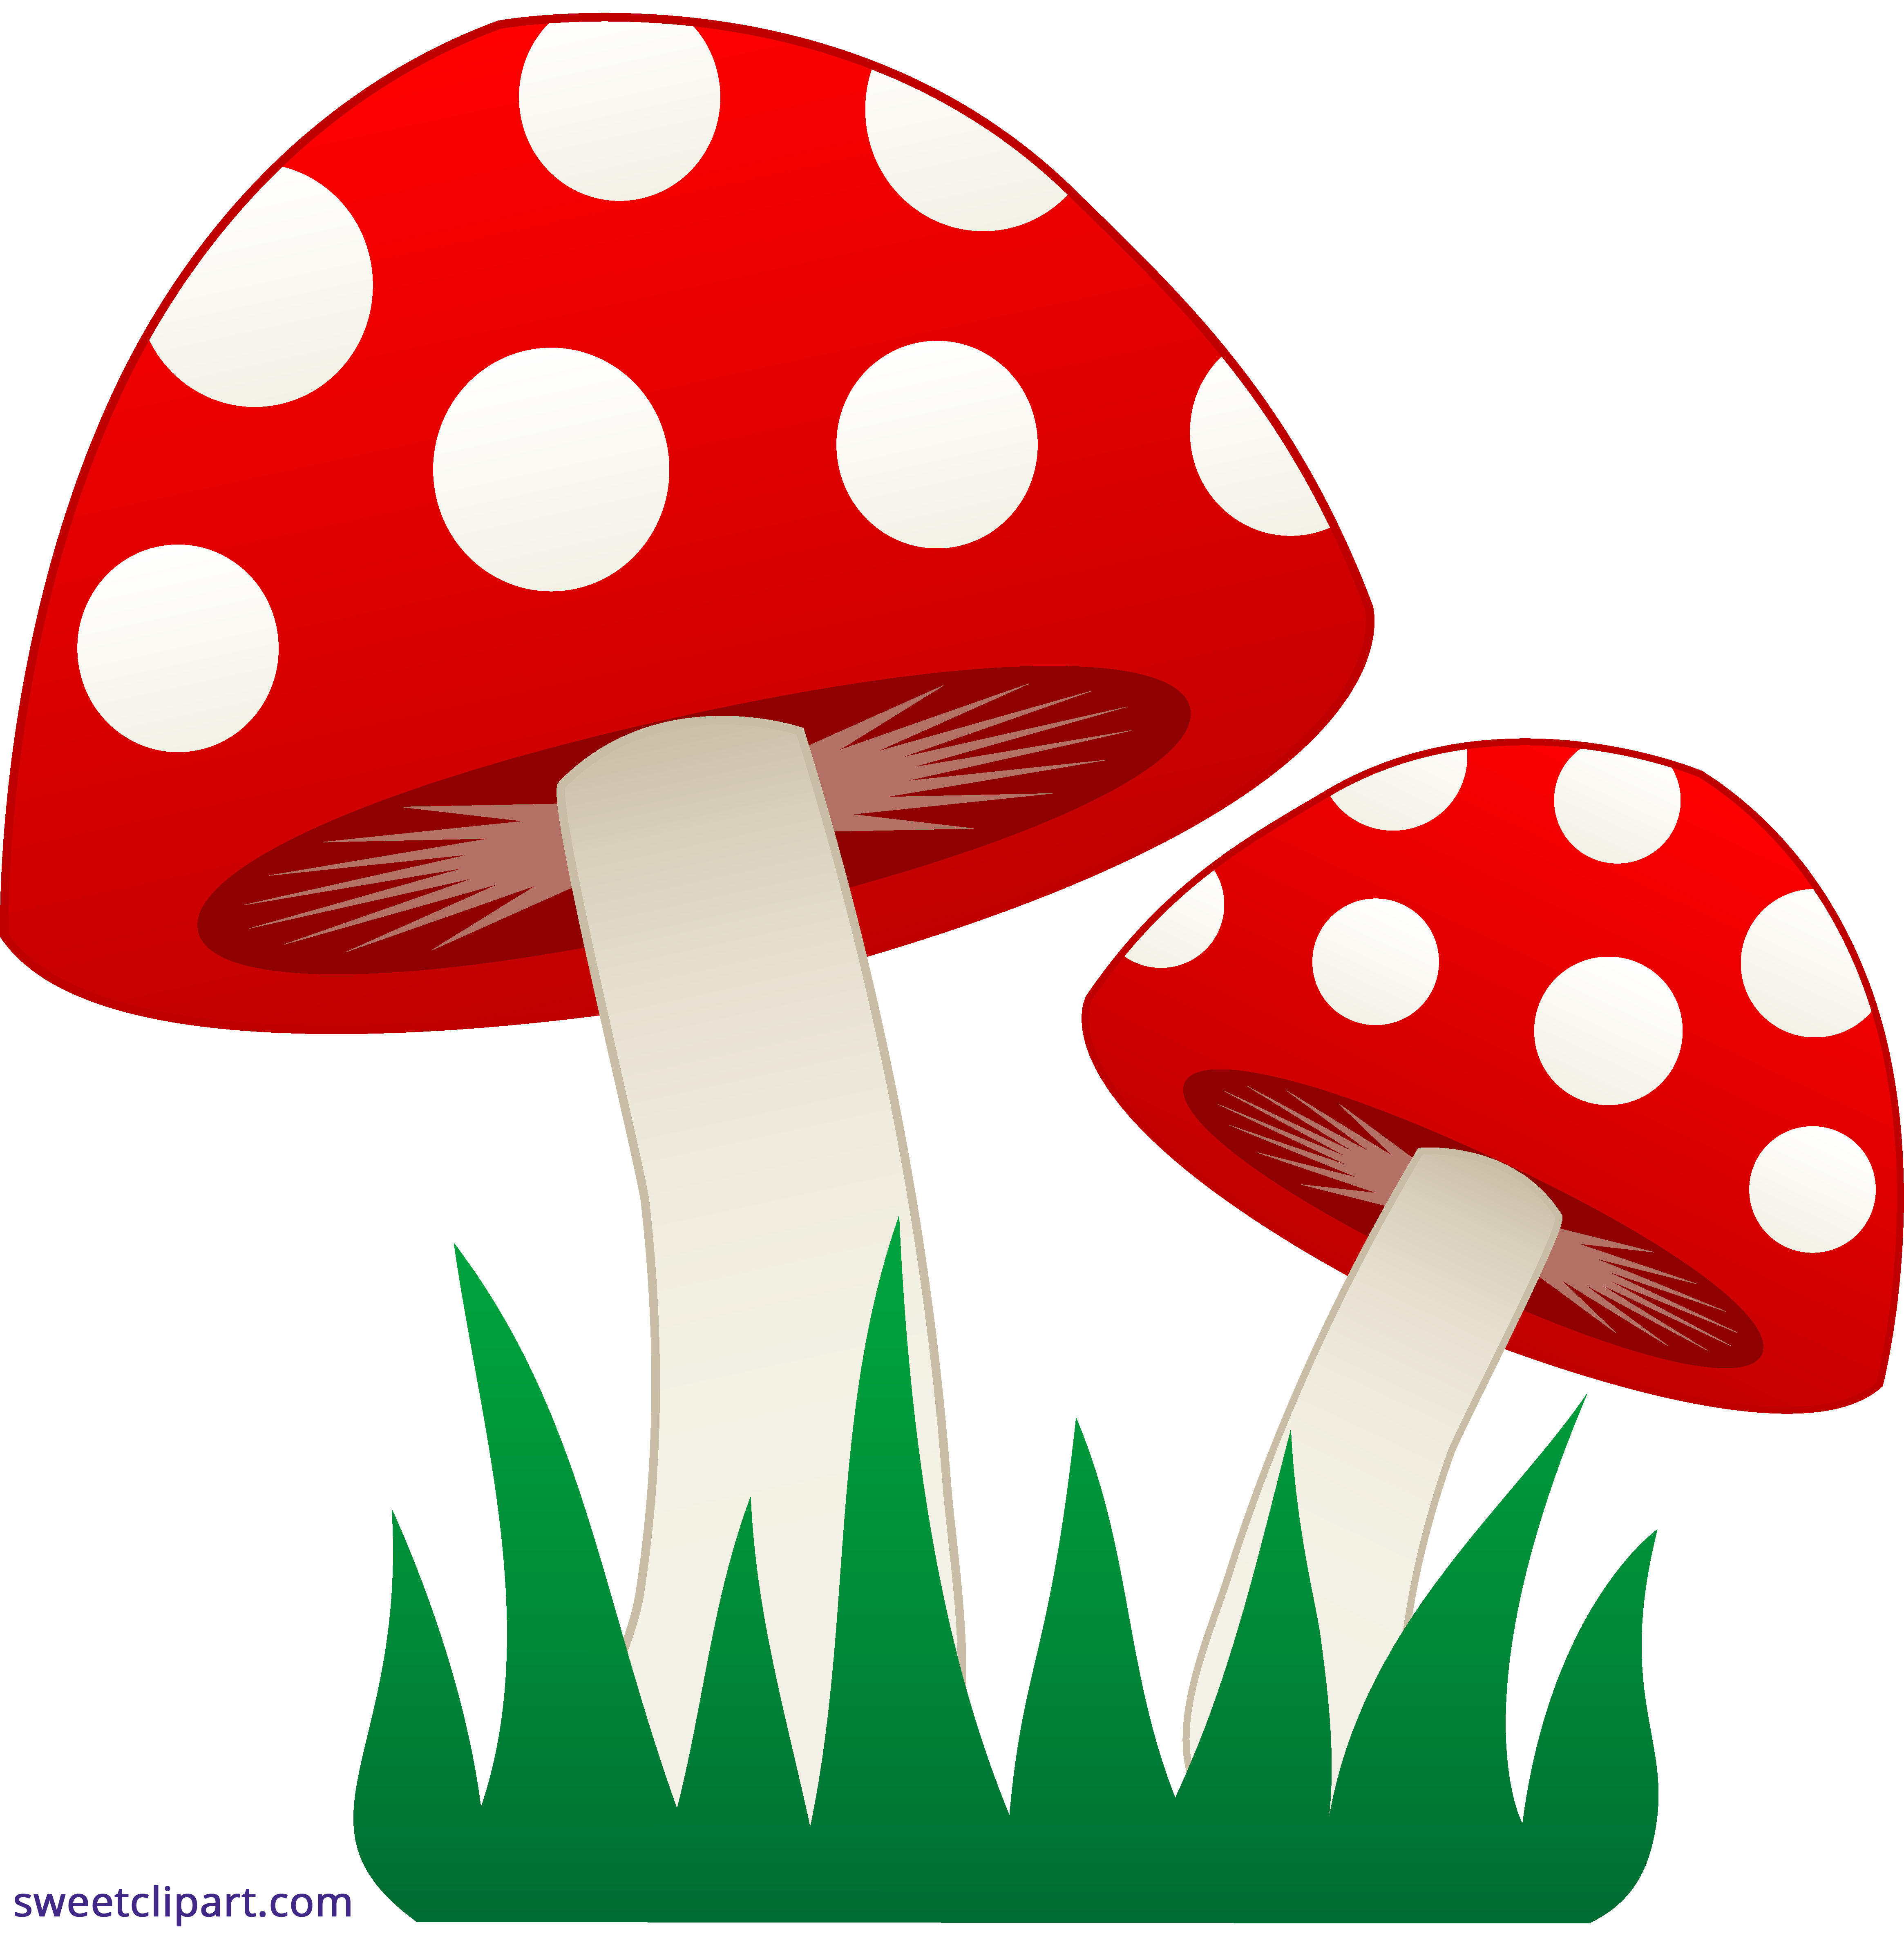 mushrooms in grass clipart sweet clip art rh m sweetclipart com grass clipart transparent grass clip art pictures